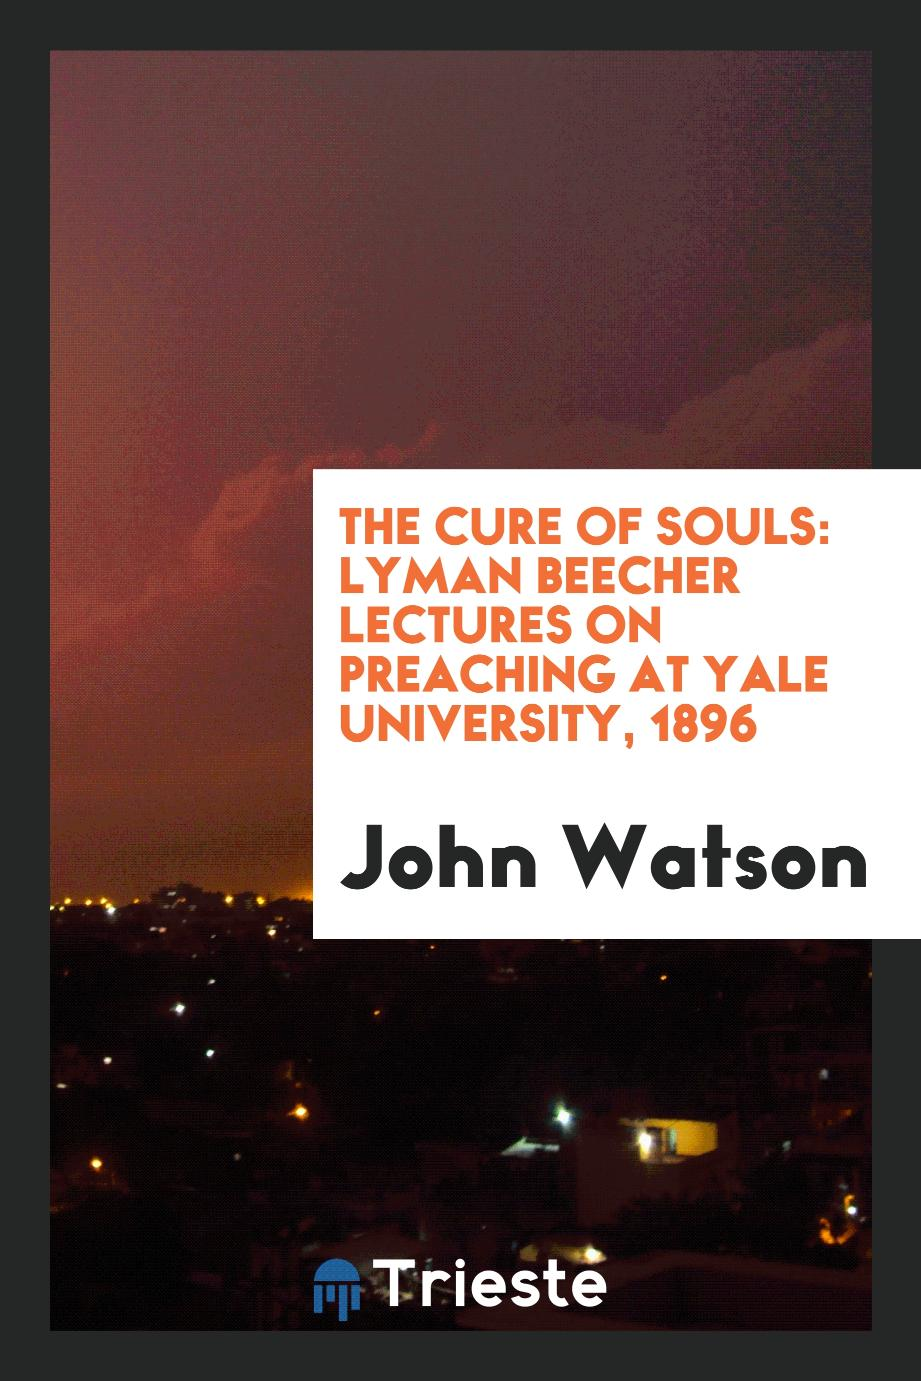 John Watson - The Cure of Souls: Lyman Beecher Lectures on Preaching at Yale University, 1896